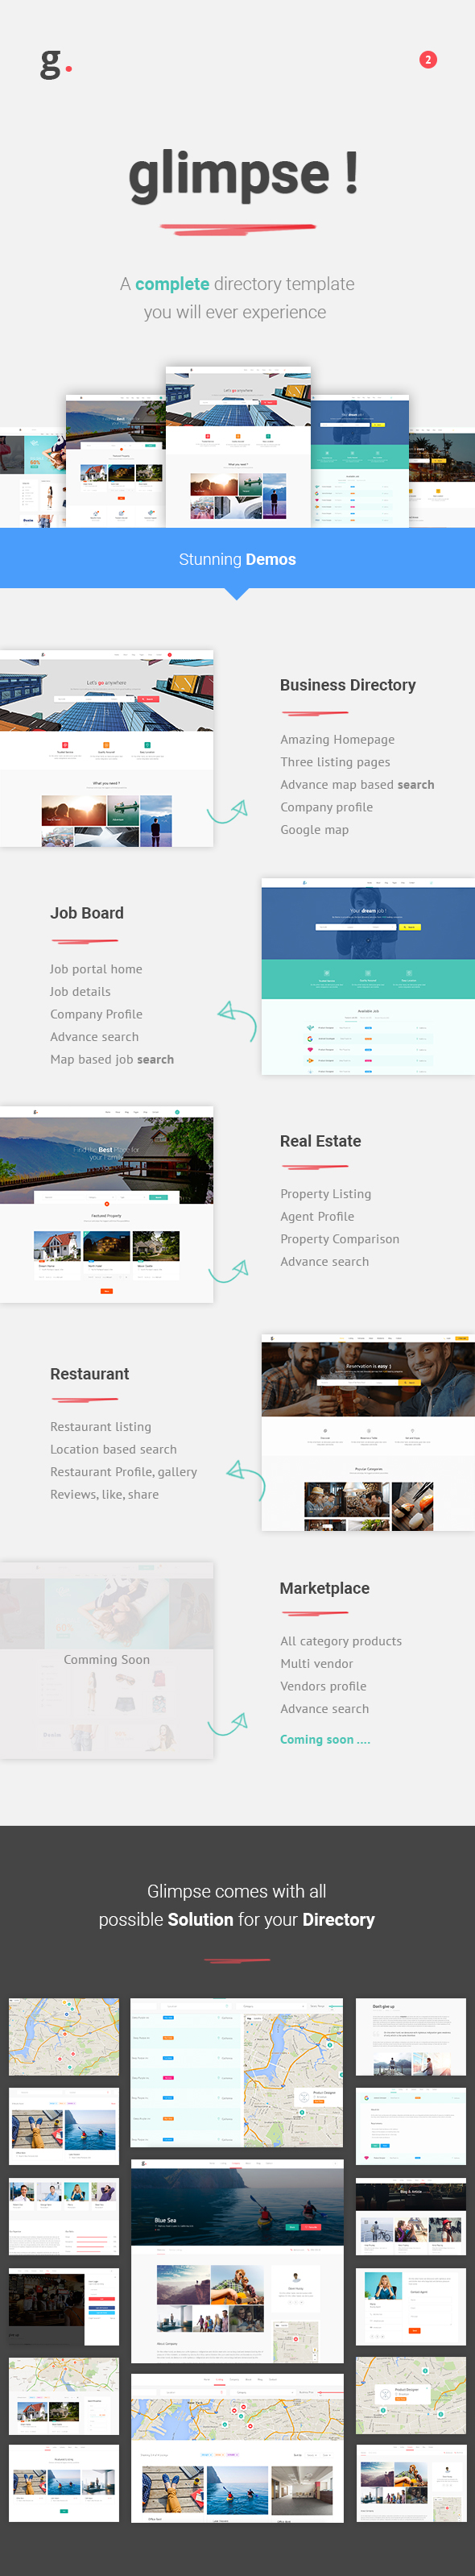 glimpse multipurpose directory template by redqteam themeforest